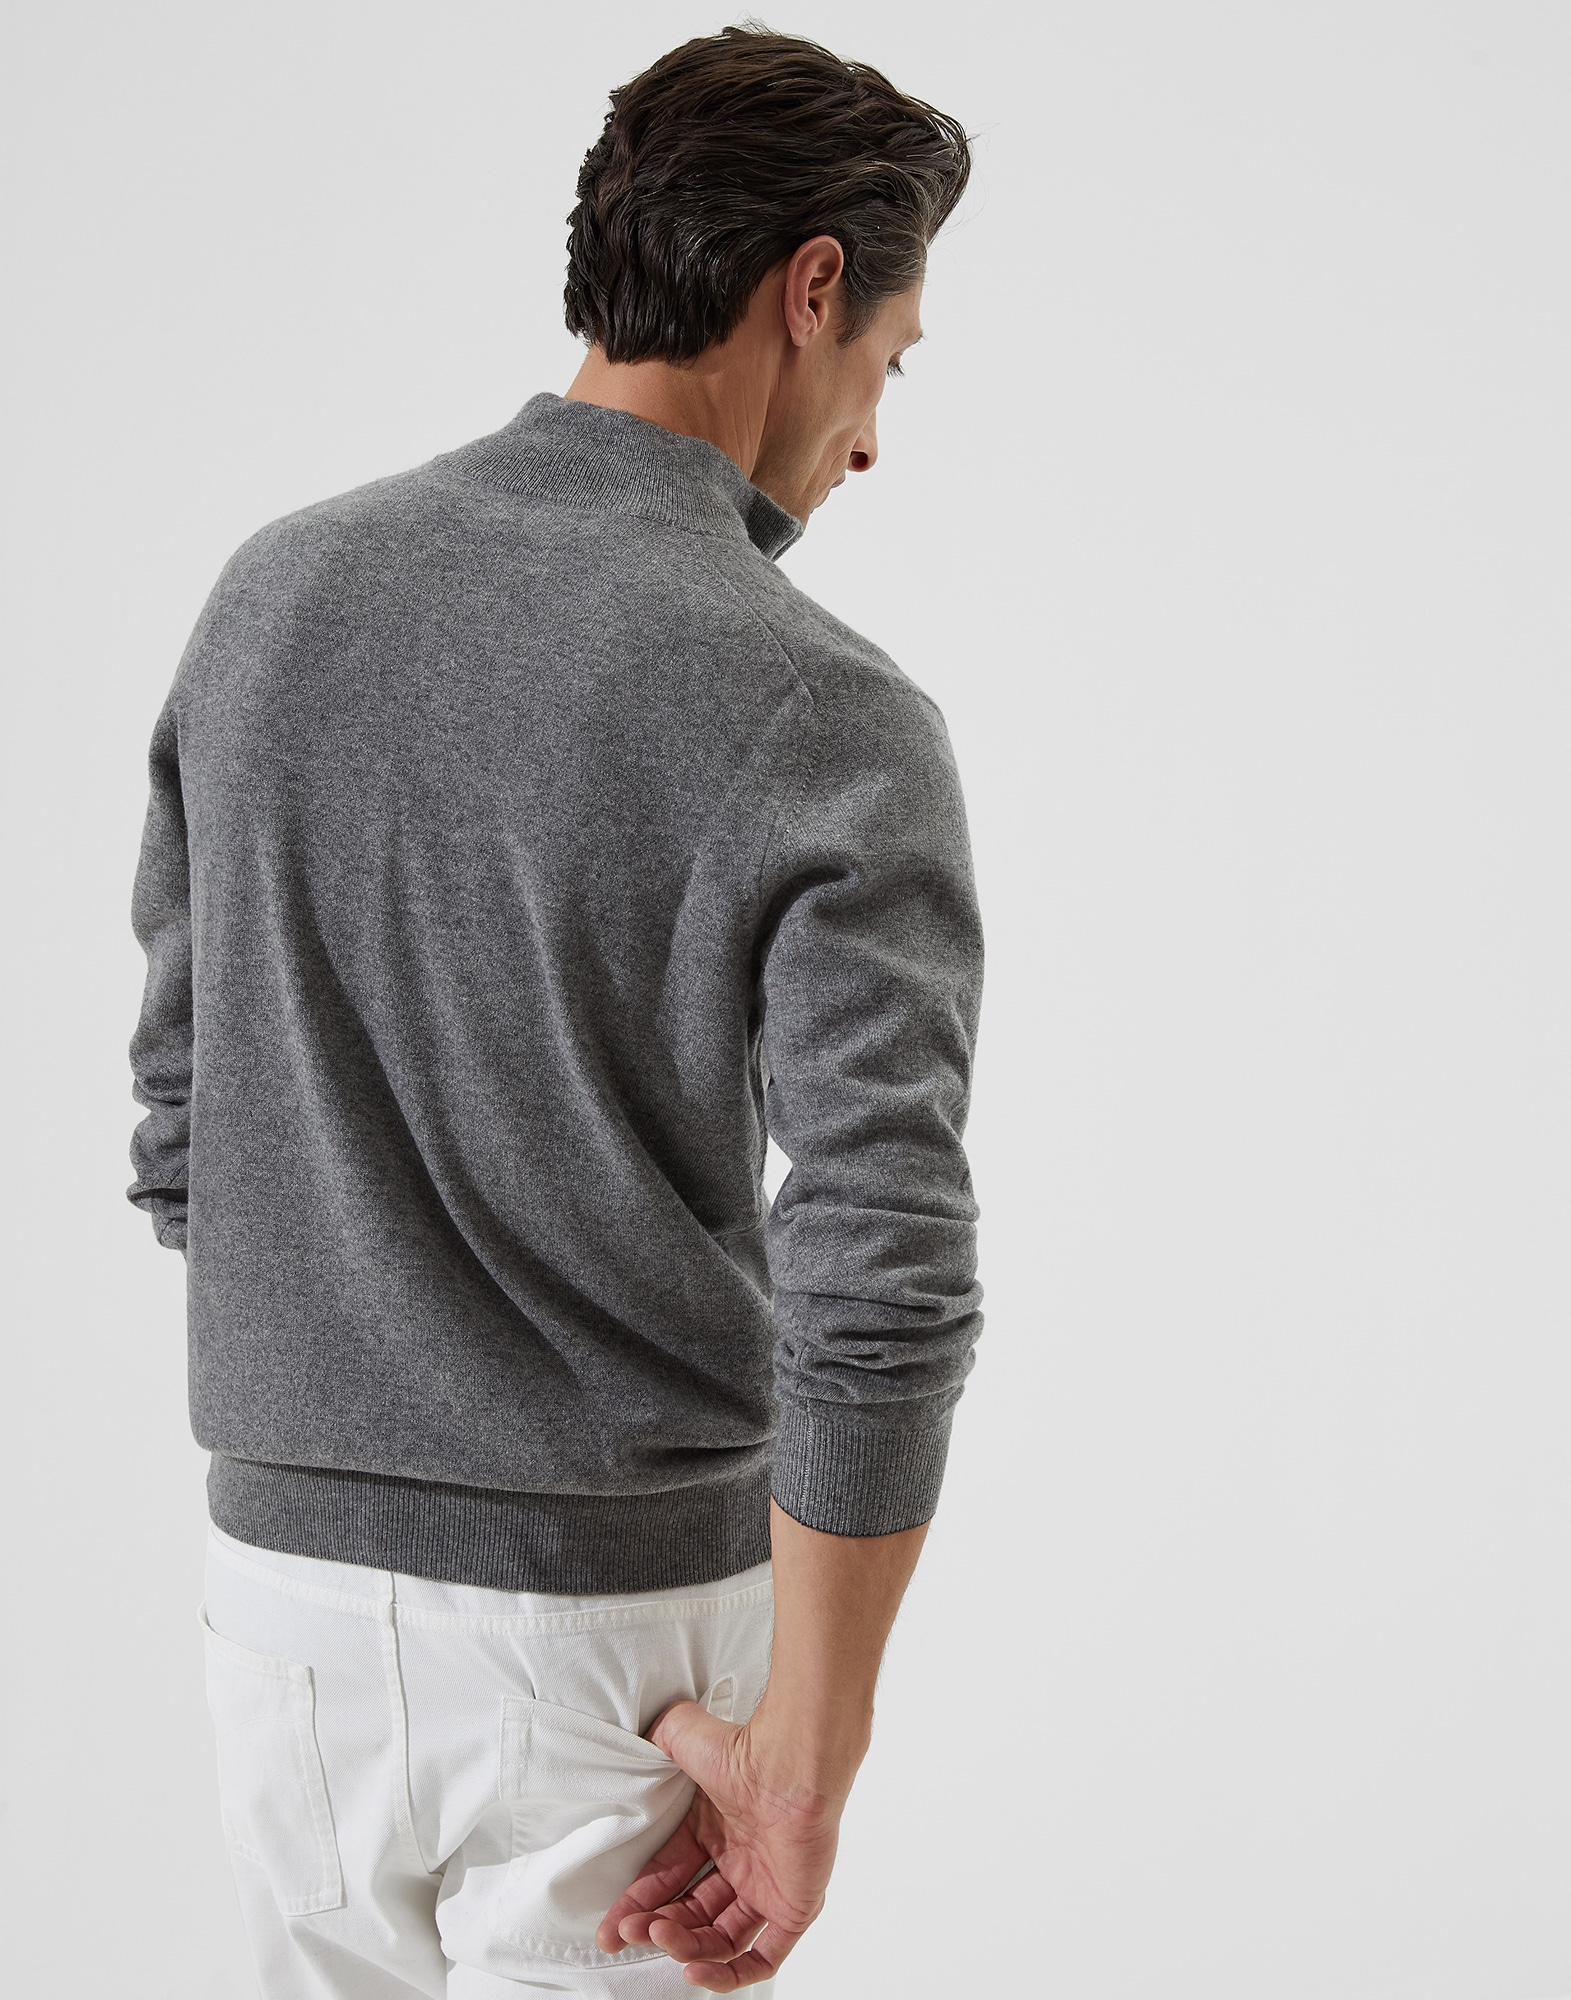 High Neck Sweater - Back view